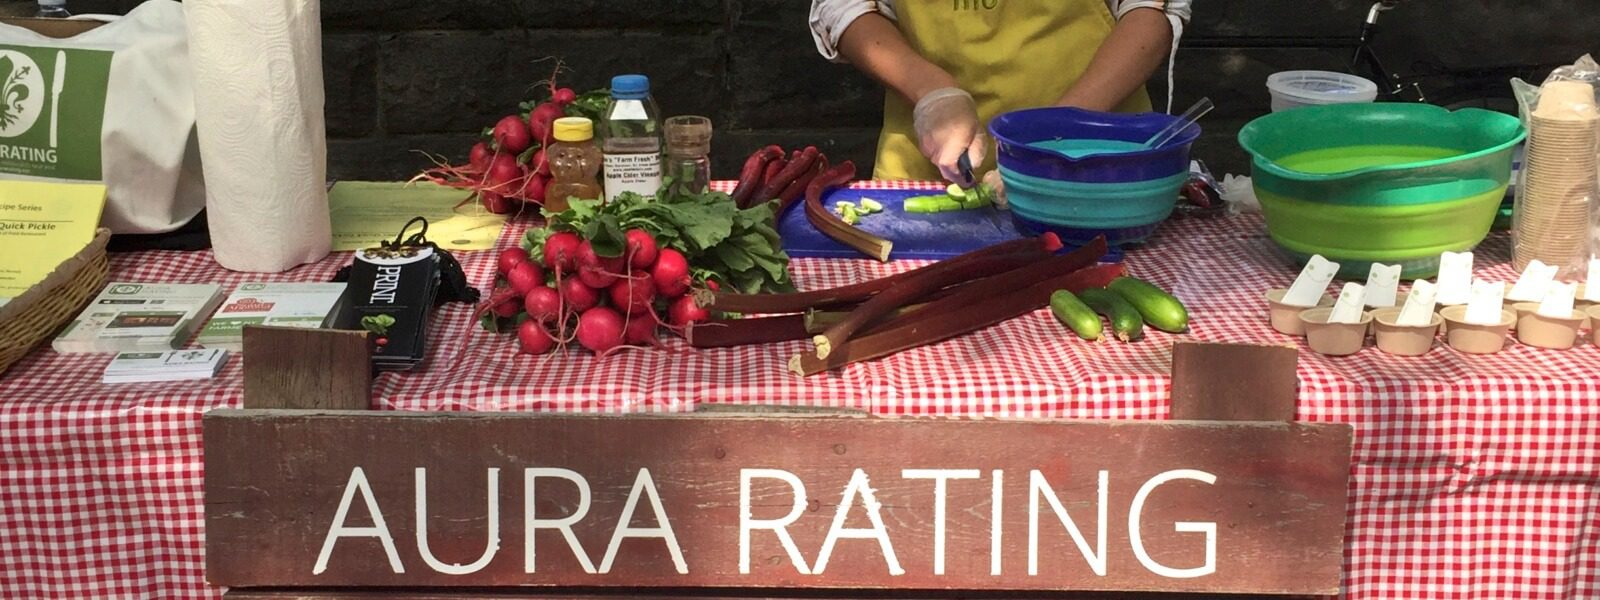 """Table set up with """"Aura Rating"""" sign."""